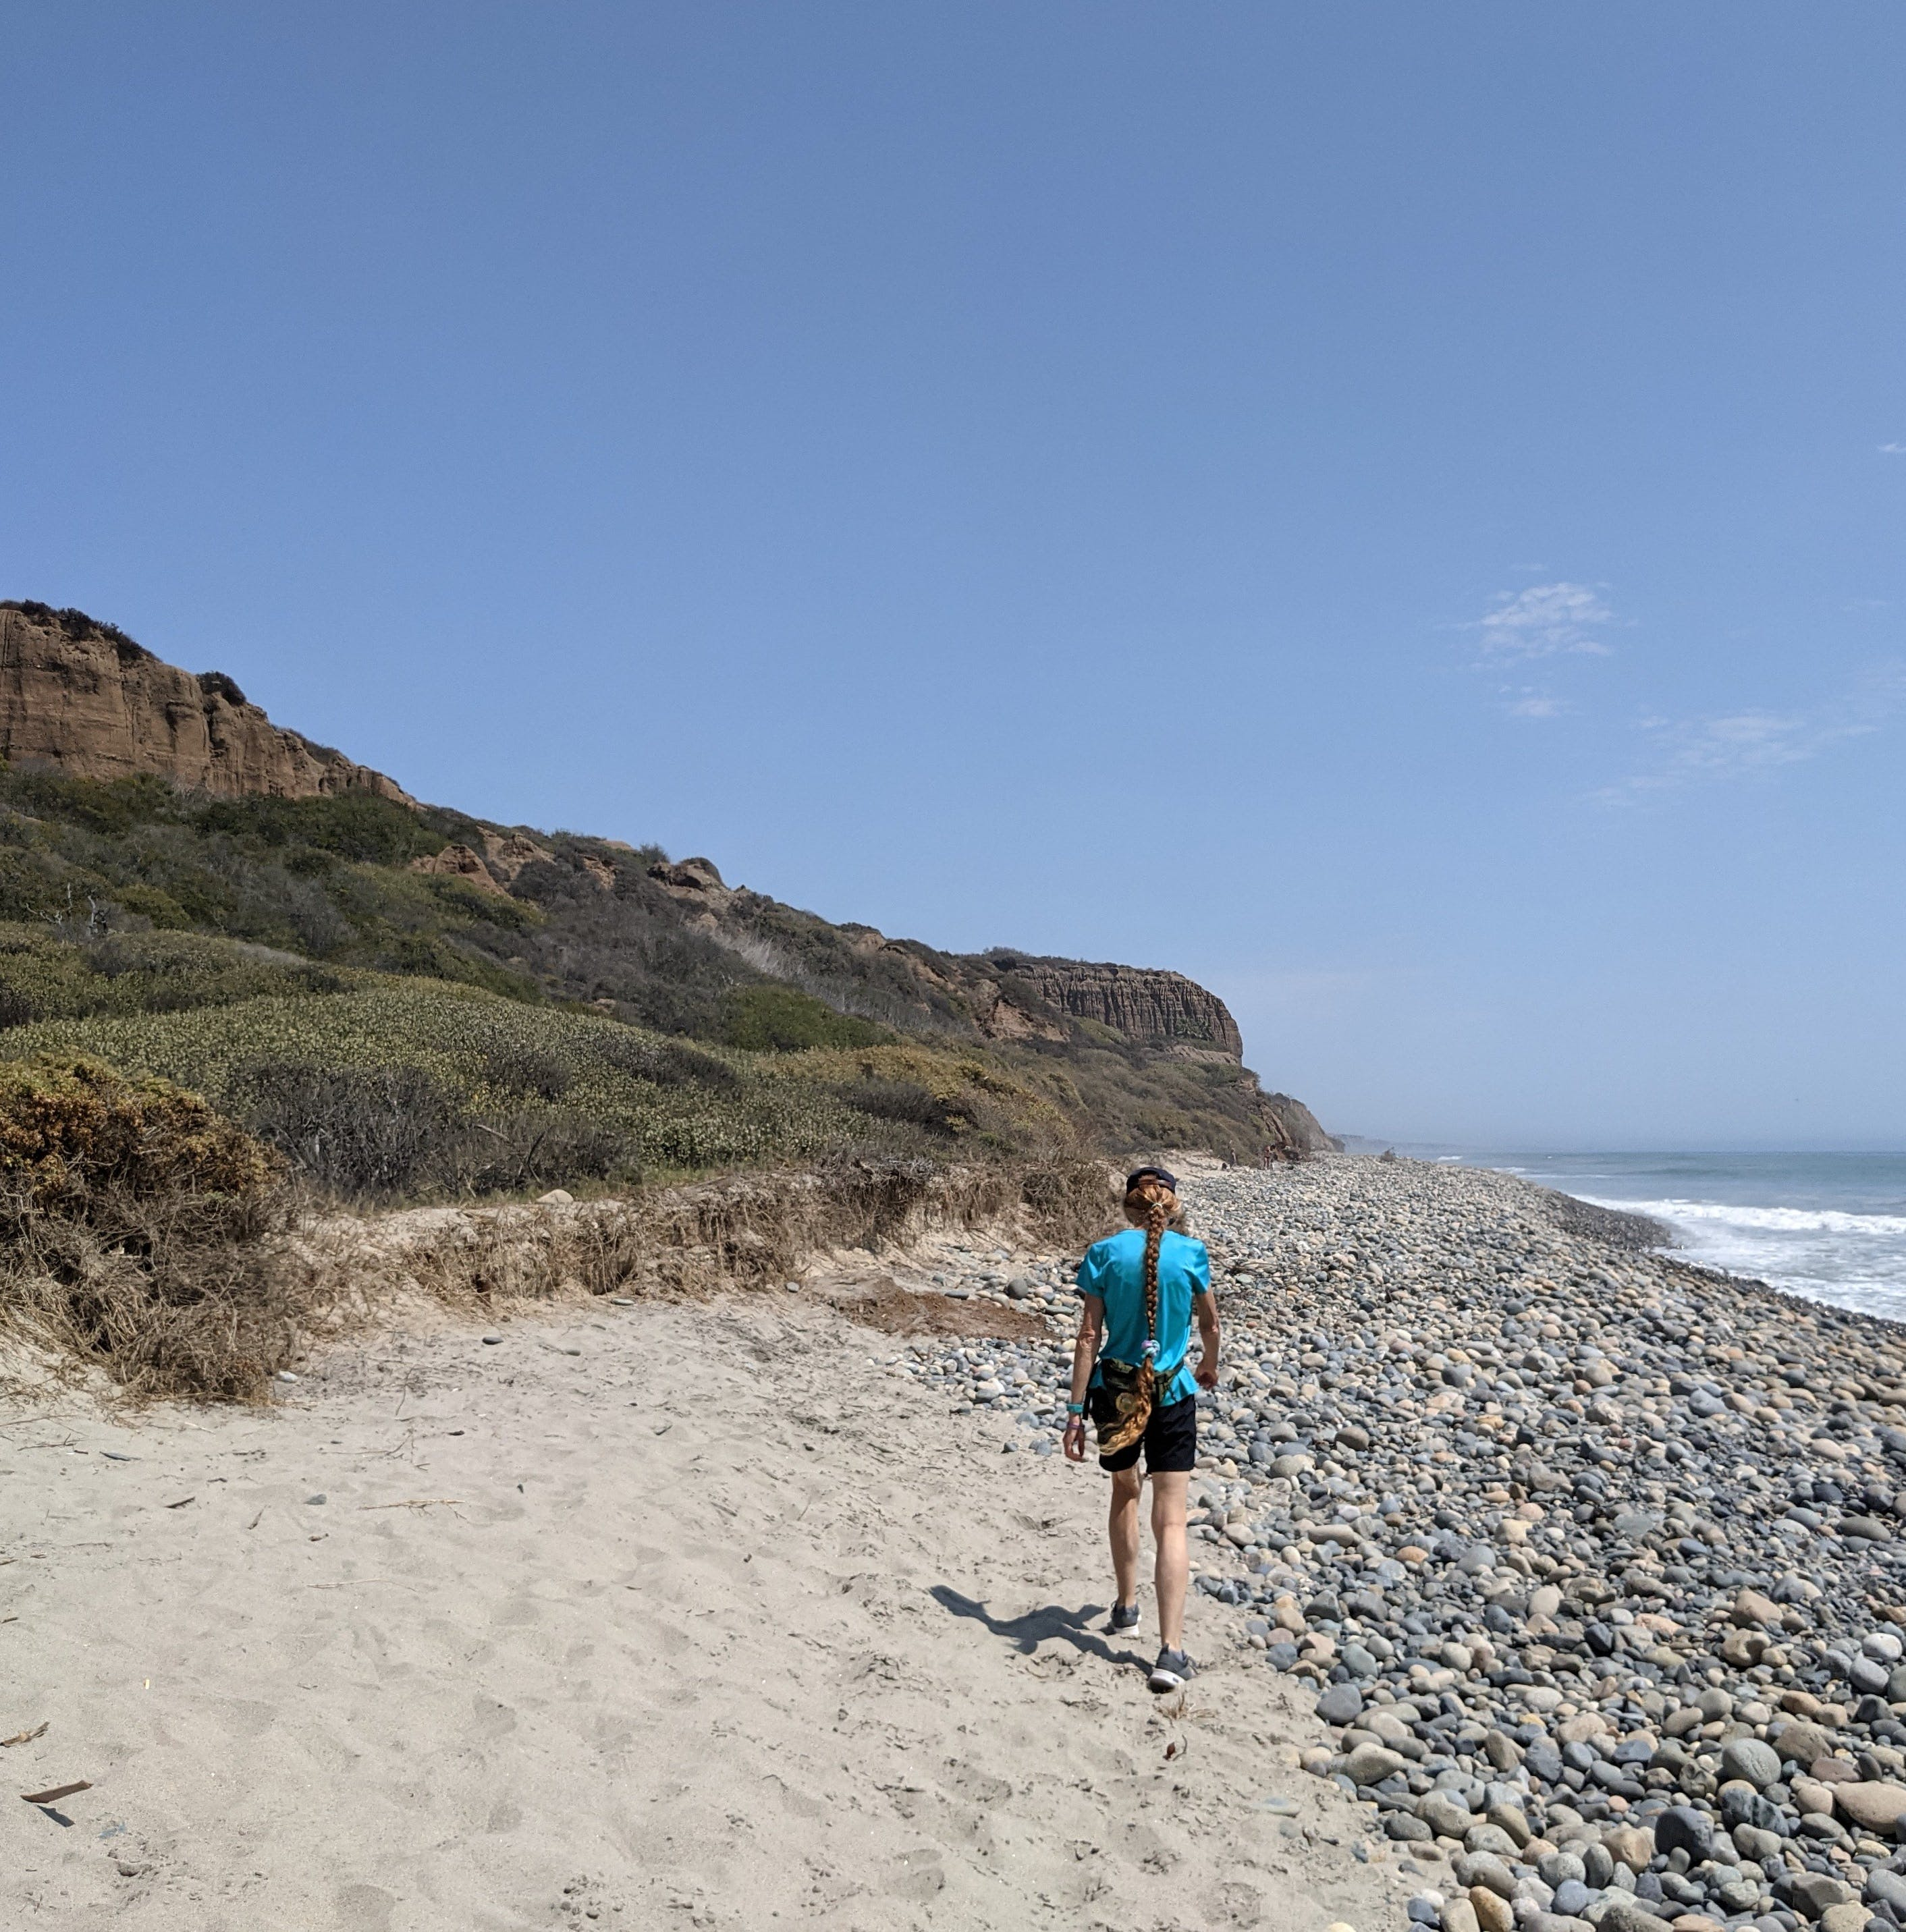 Woman walking on the sandy beach next to a rocky section on San Onofre State Beach in San Diego County